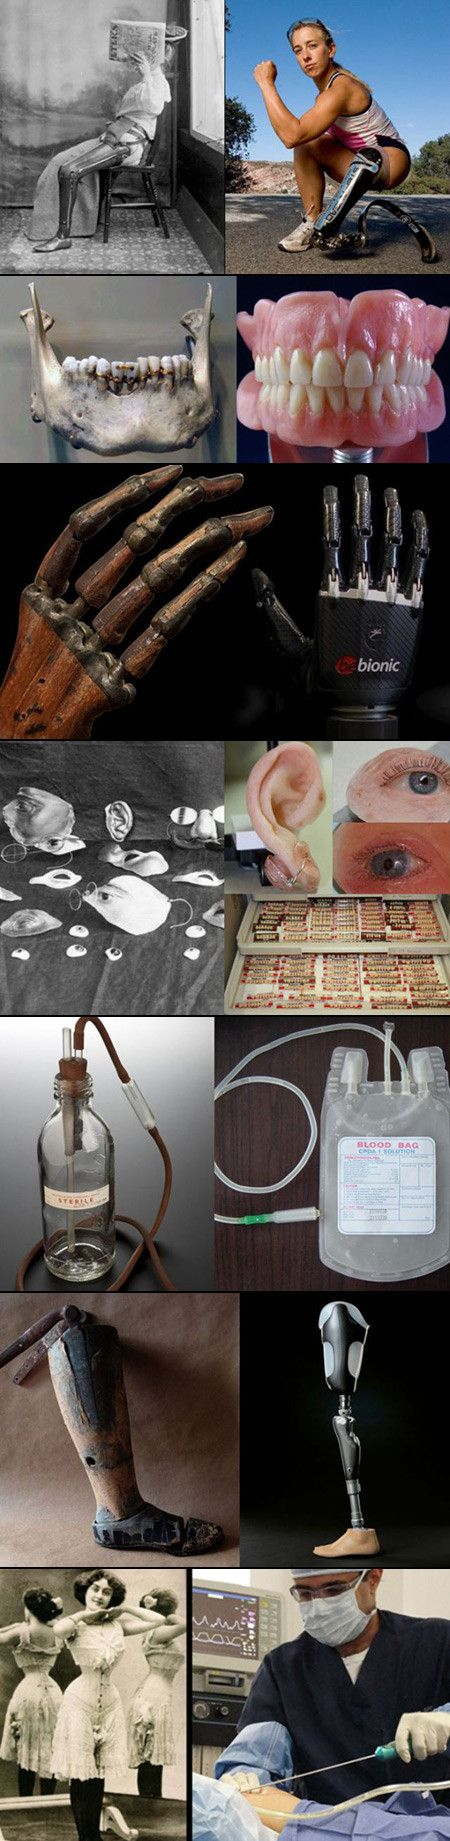 We have rounded up some pictures showing just how far medical technology has come.